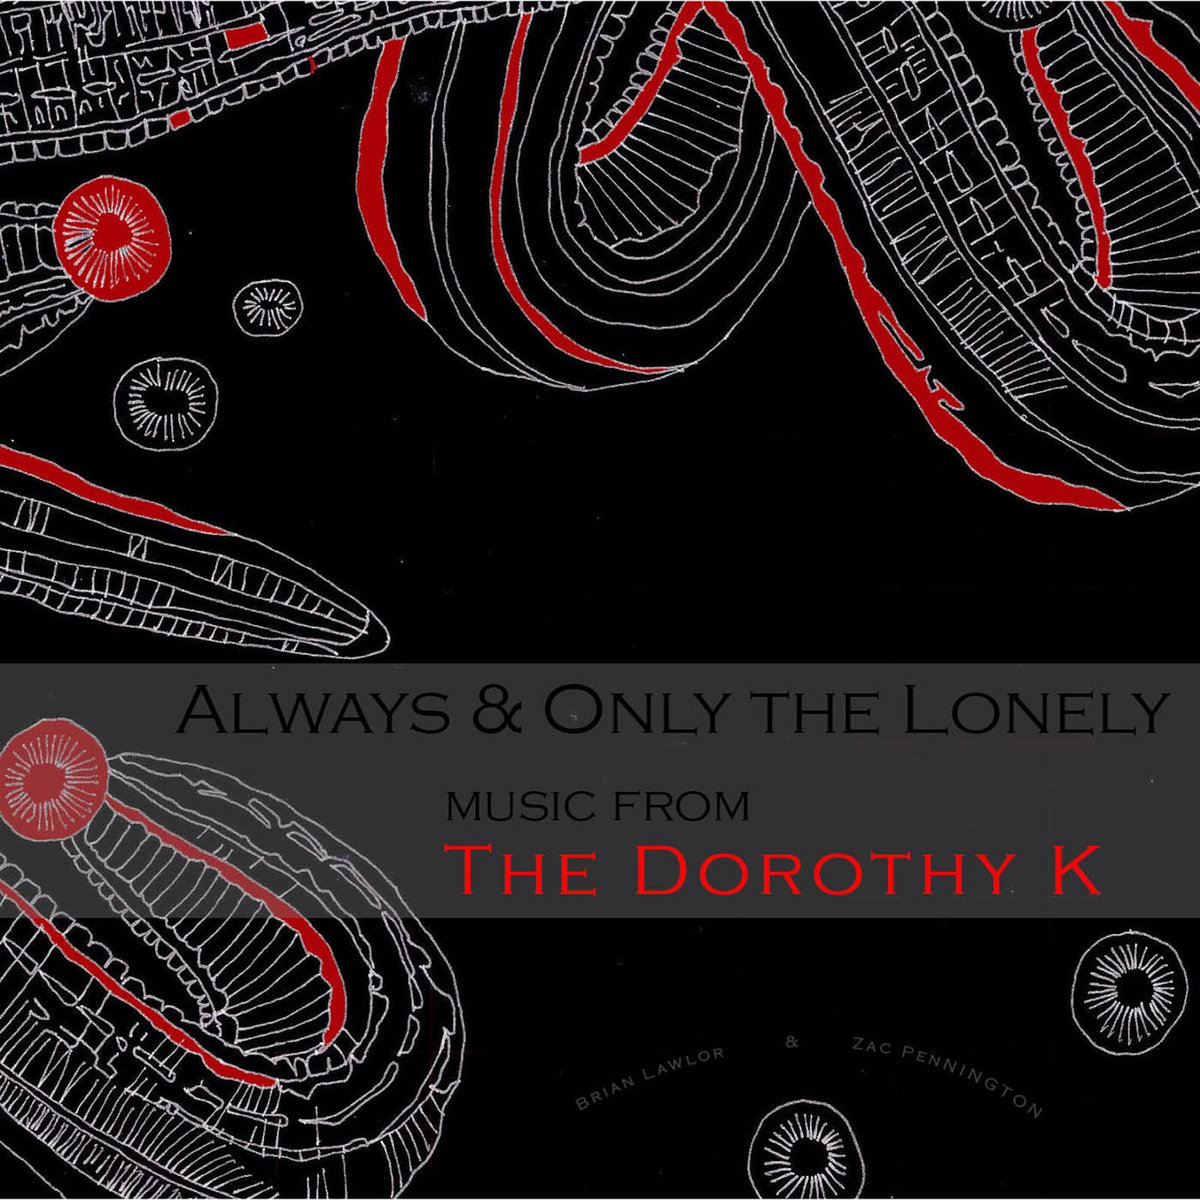 Always and Only the Lonely Dorothy K Zac Pennington Brian Lawlor